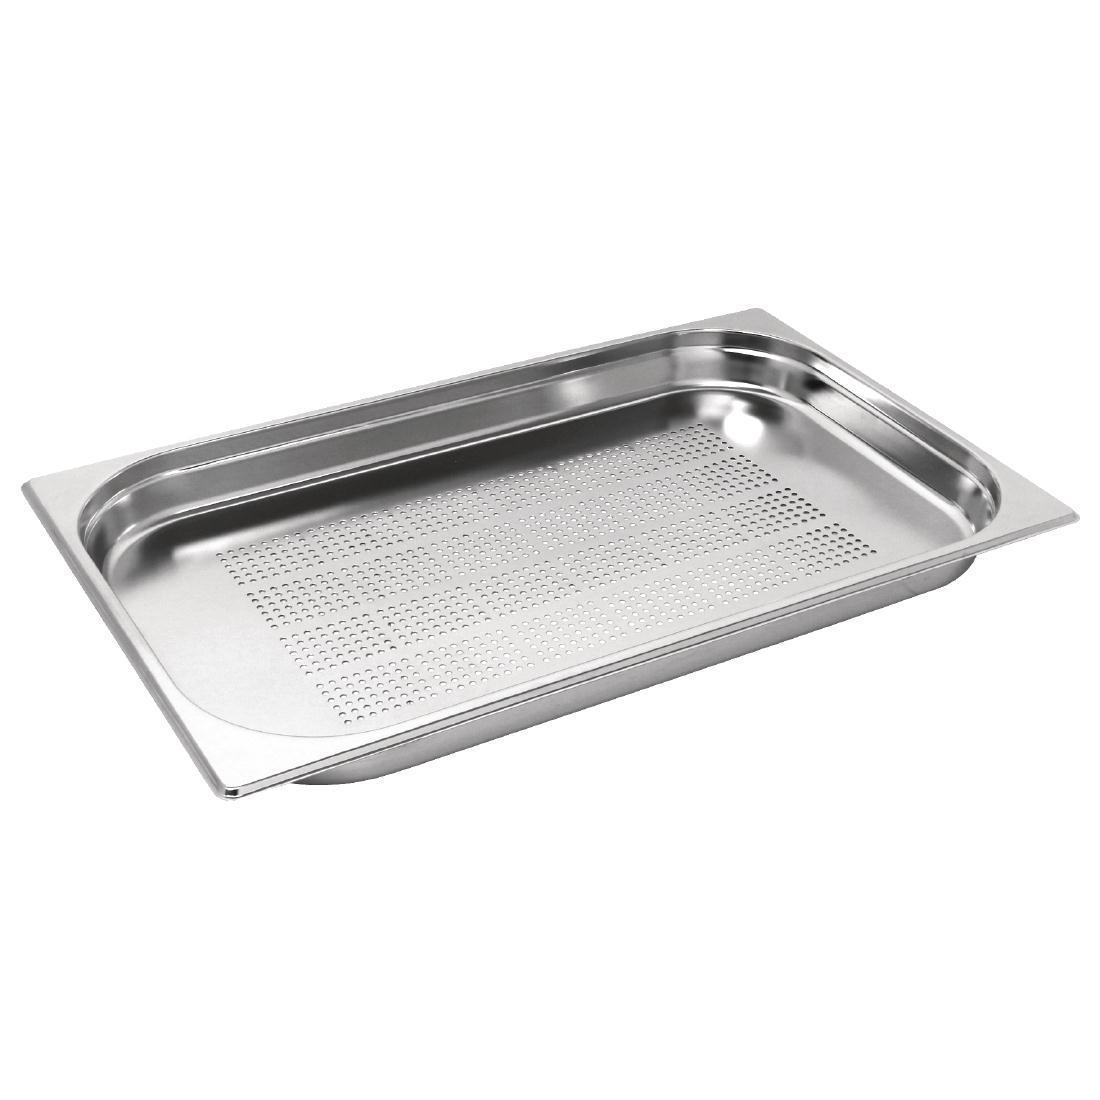 Vogue Stainless Steel Perforated 1/1 Gastronorm Pan 40mm - K839